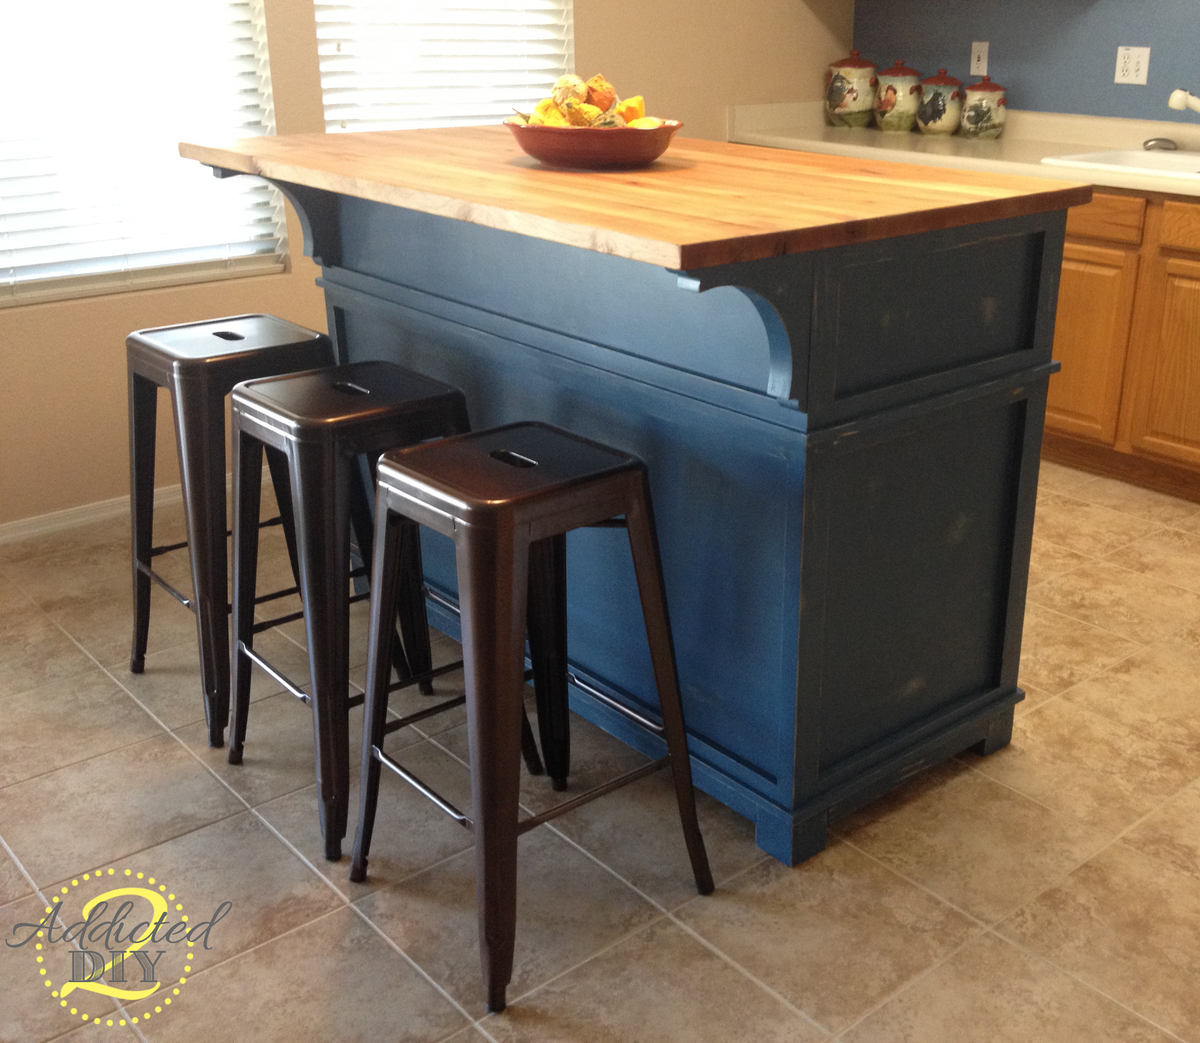 Uncategorized Diy Kitchen Island ana white diy kitchen island projects island